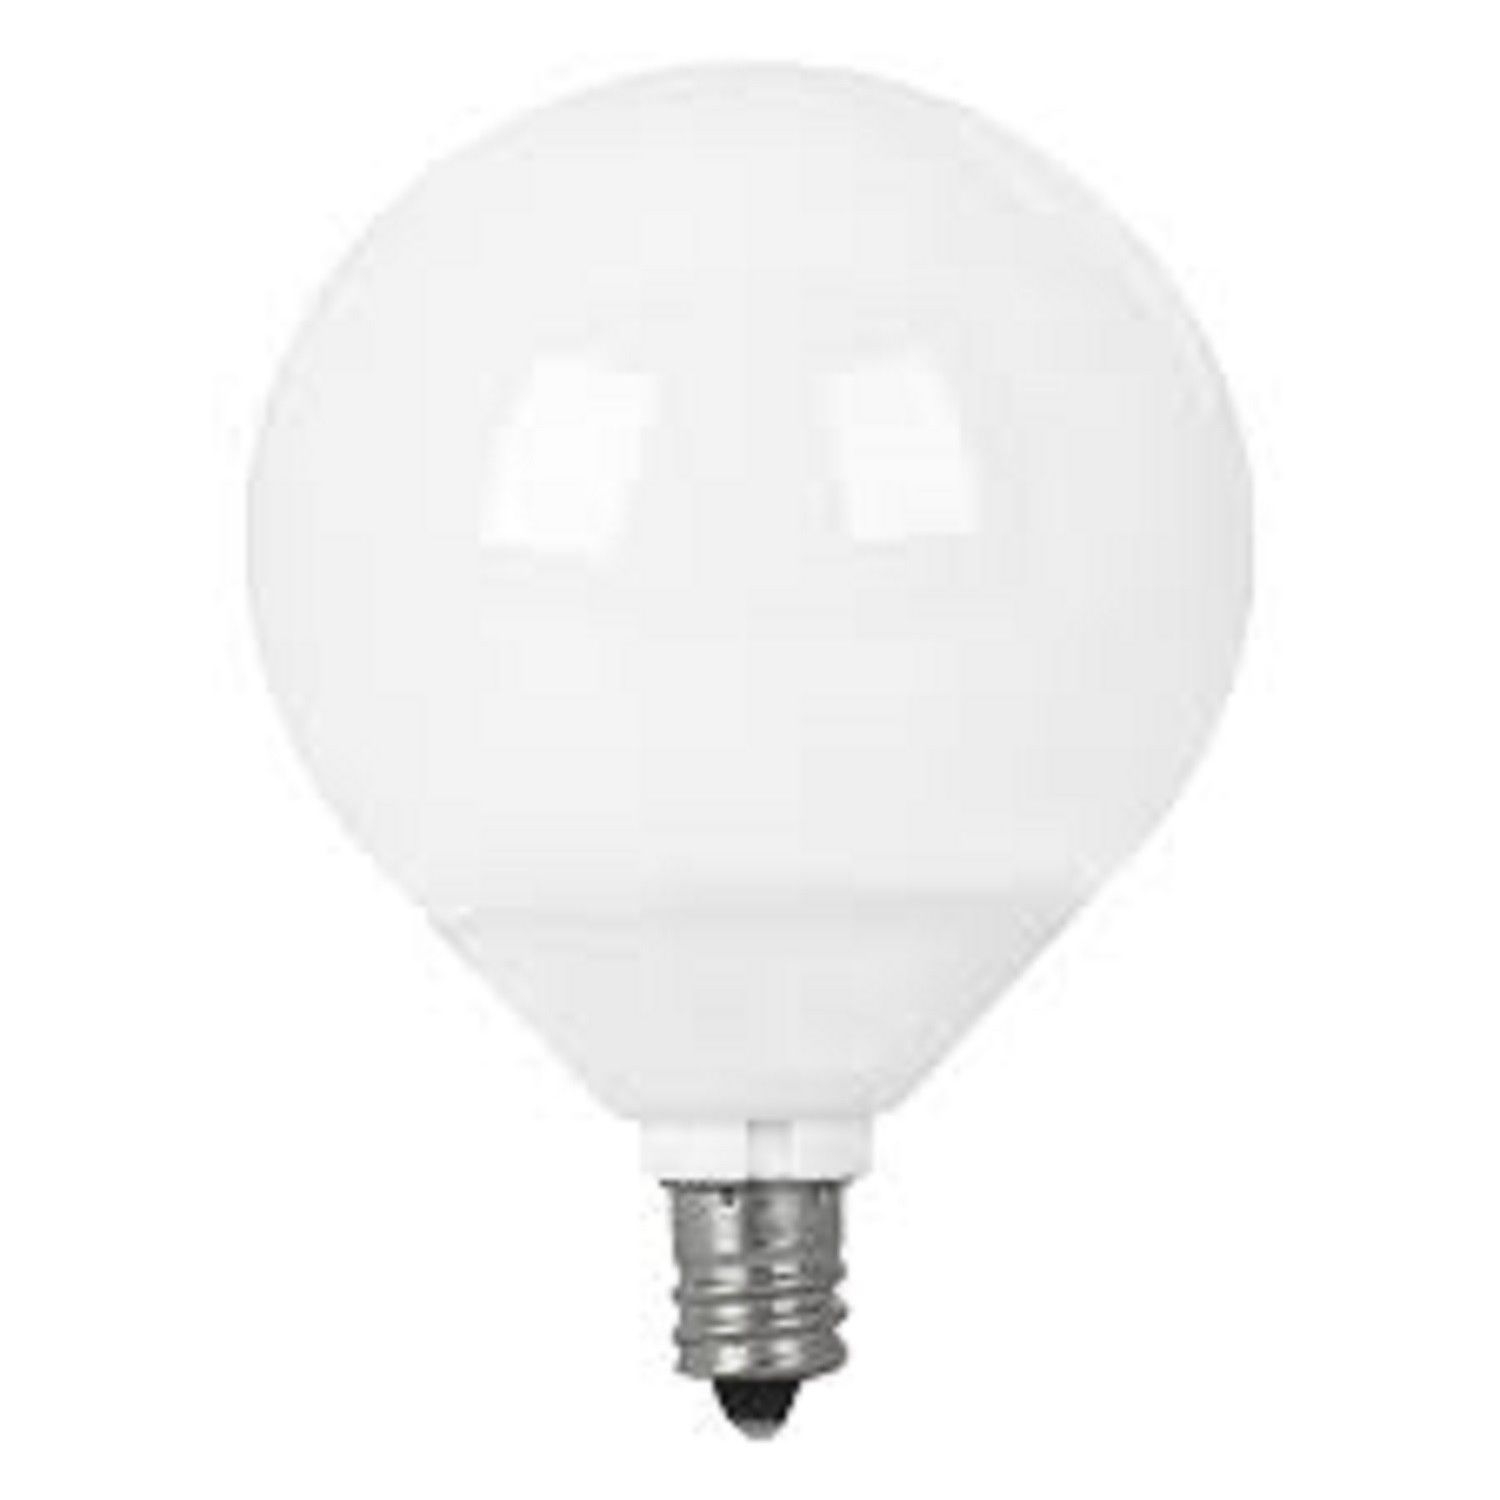 Bright Effects 2pk 12 Watt Replaces 60w Soft White Light Bulbs New throughout dimensions 1500 X 1500